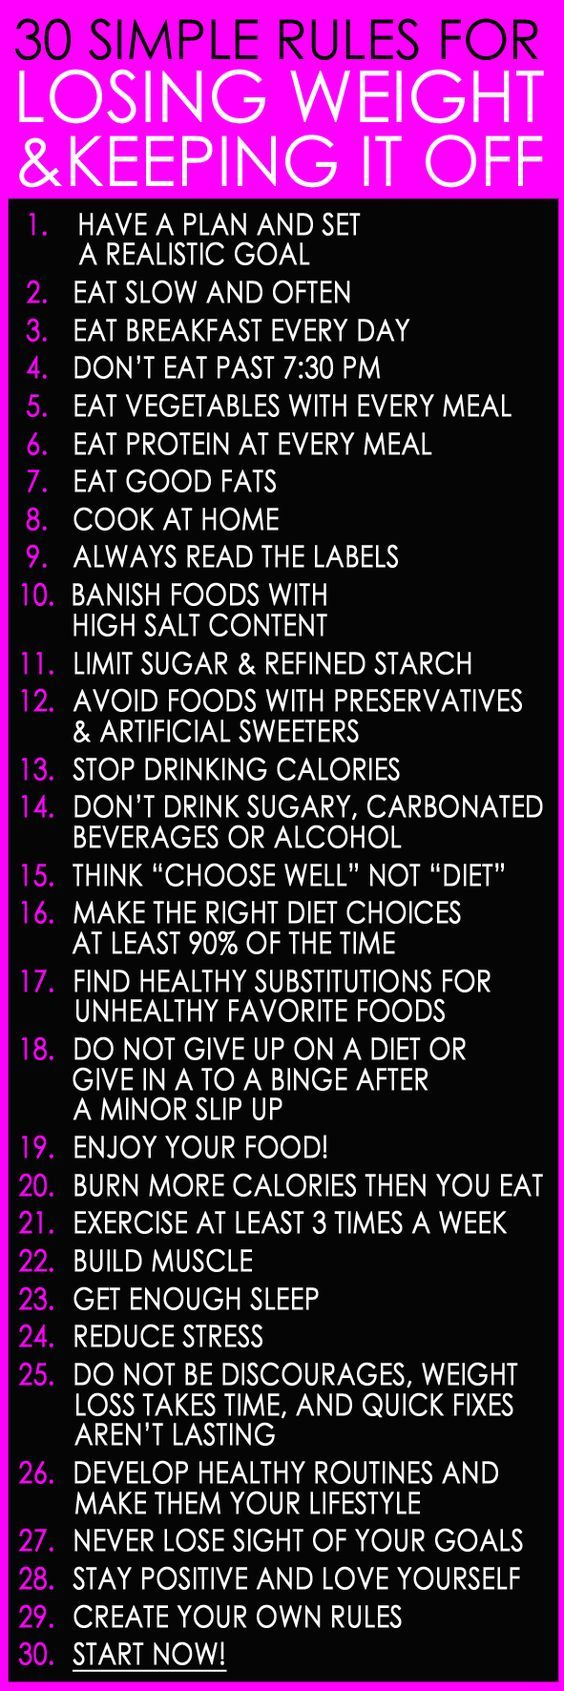 Apply these rules for losing weight.